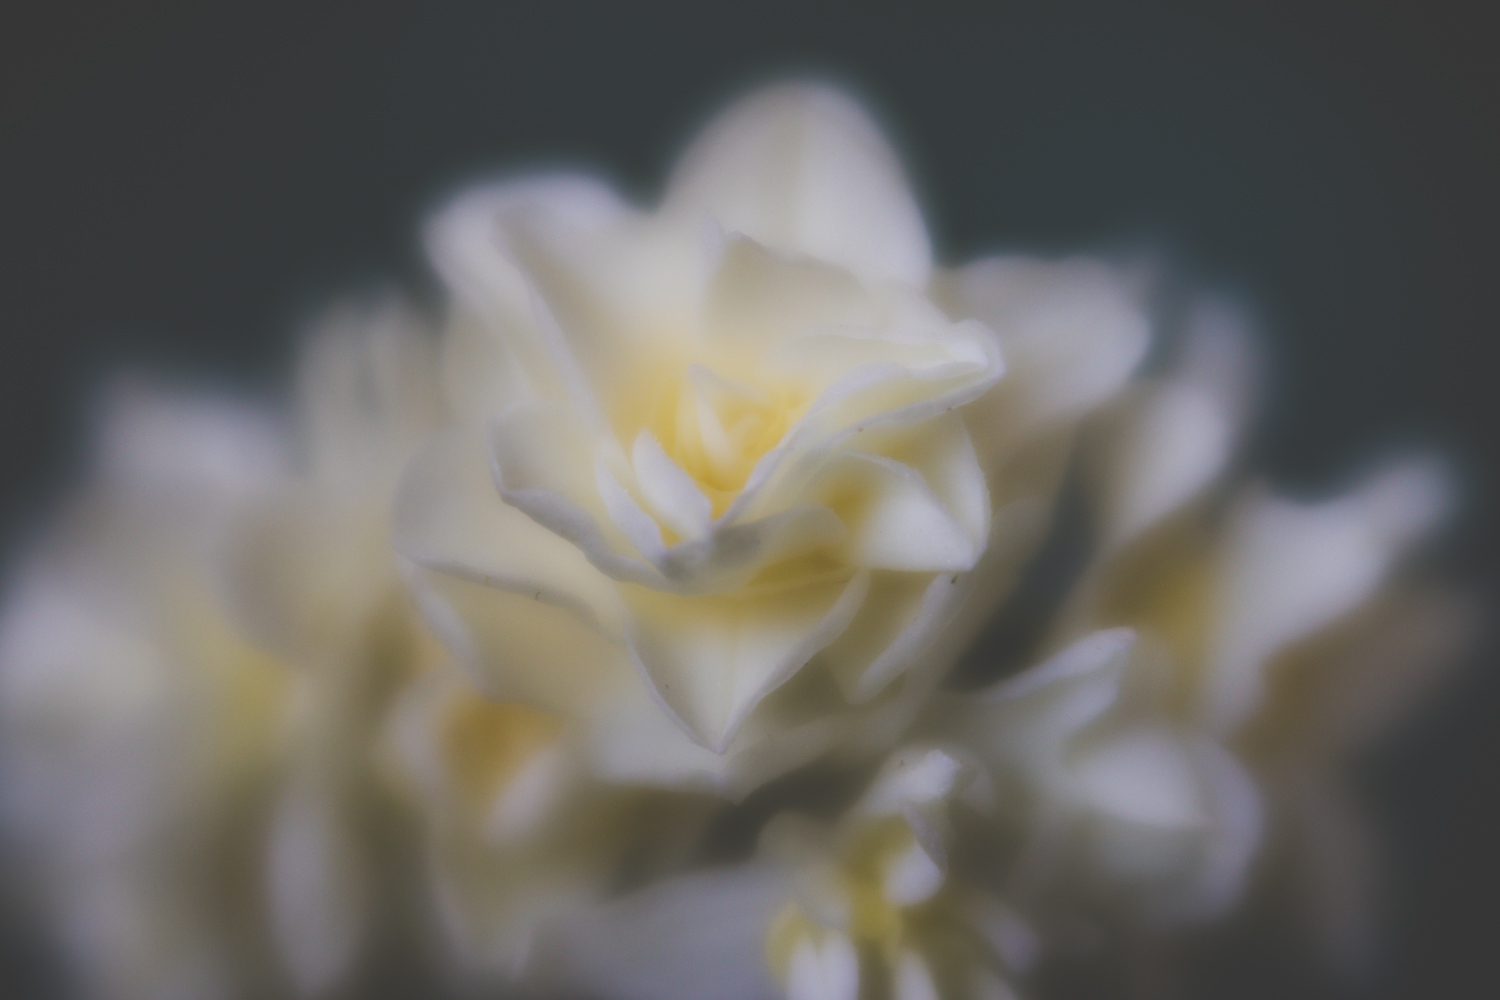 Blur and Creative Photography - Why Your Images Don't Need To Be 100% Sharp 10